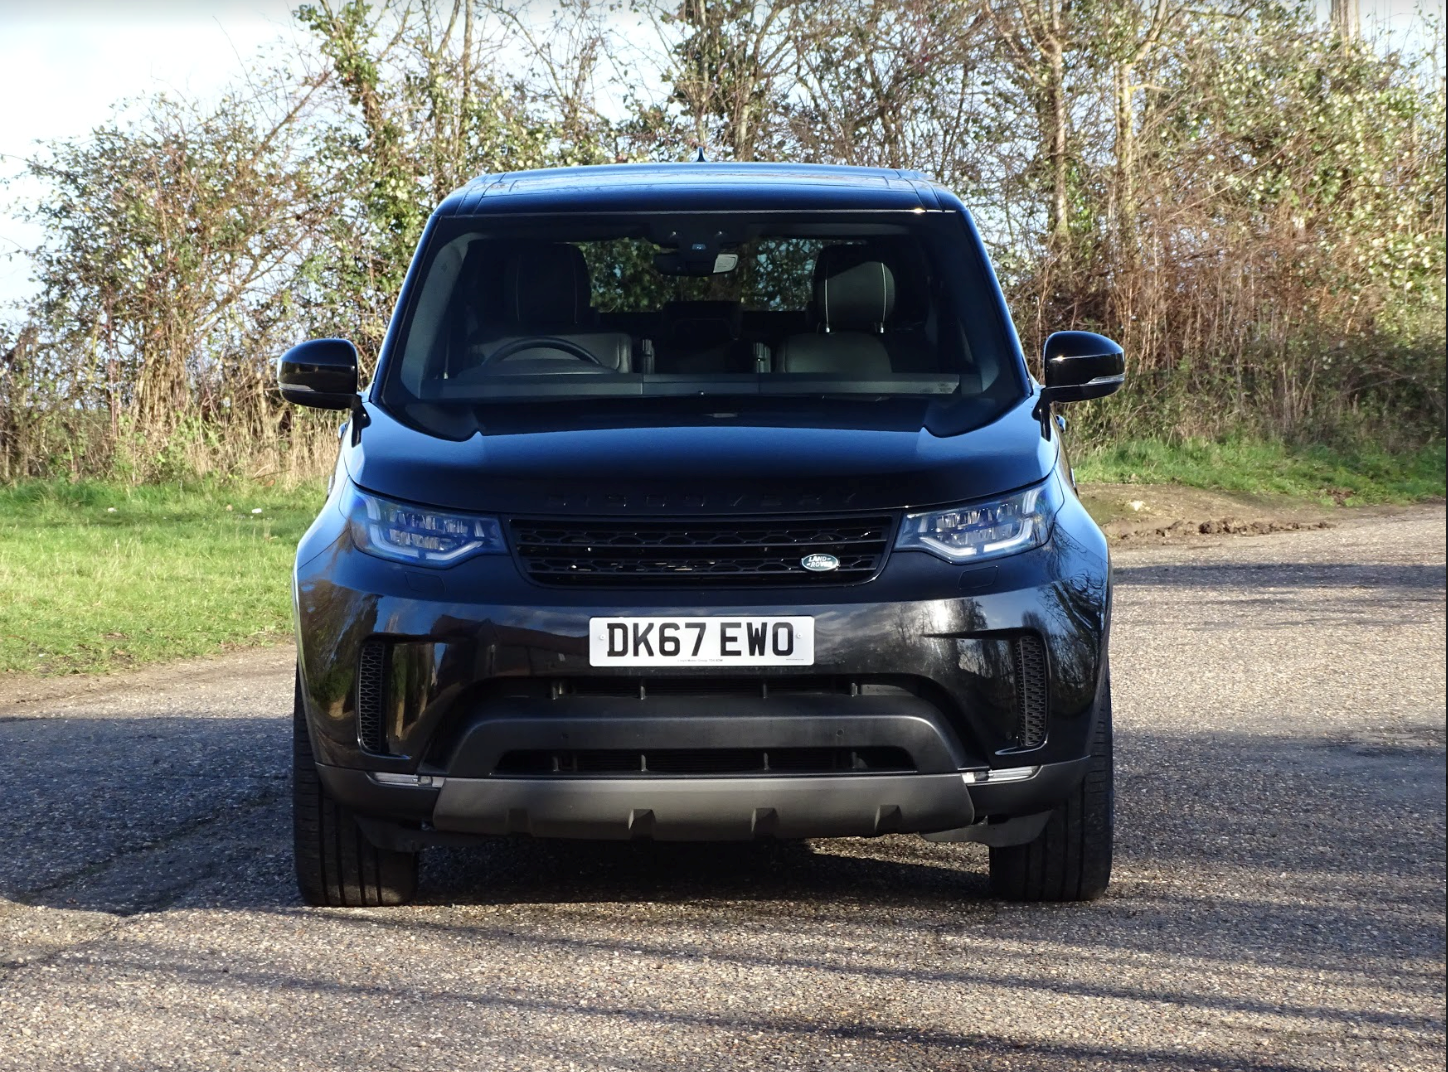 2017 Land Rover  DISCOVERY  3.0 SDV6 HSE 7 SEATER AUTO  41,948 For Sale (picture 5 of 13)